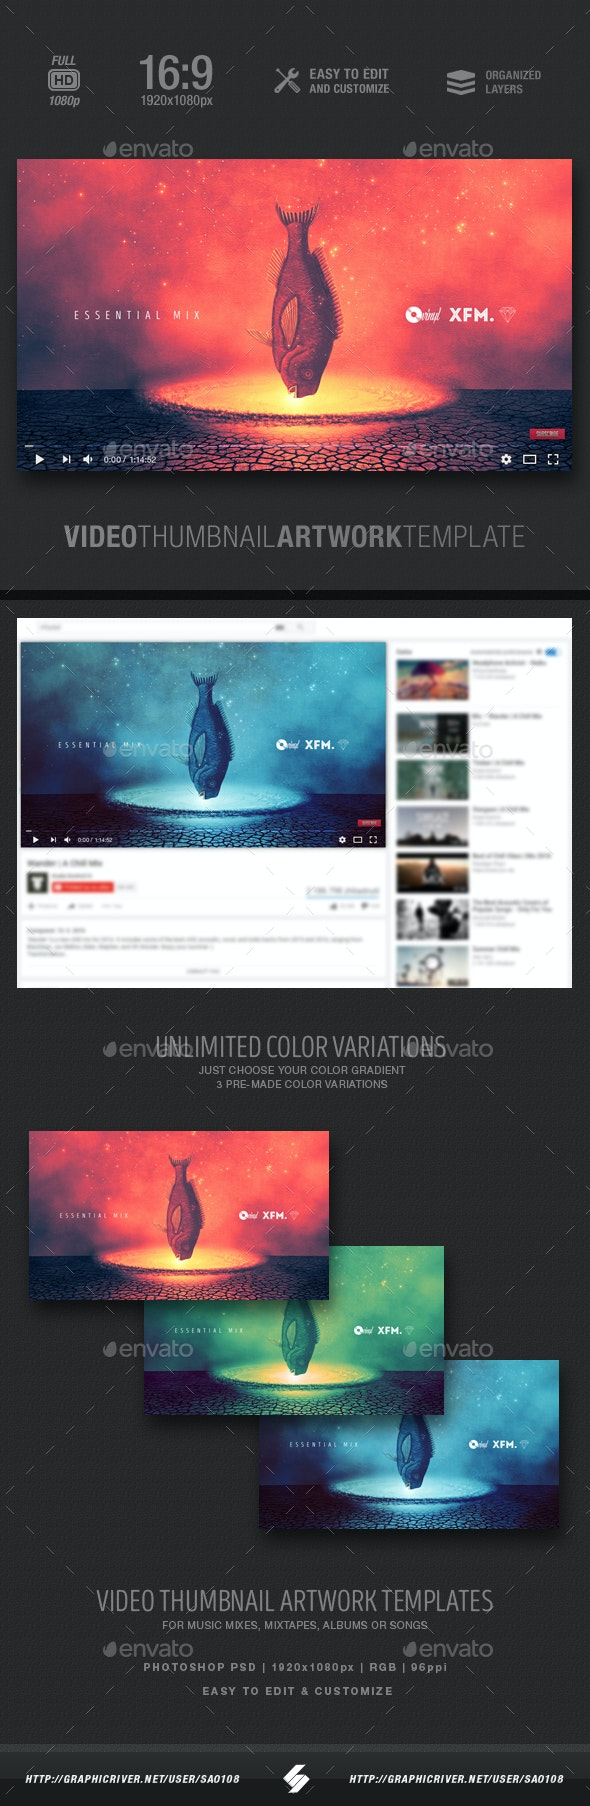 Impact - Essential Mix Video Thumbnail Template - YouTube Social Media